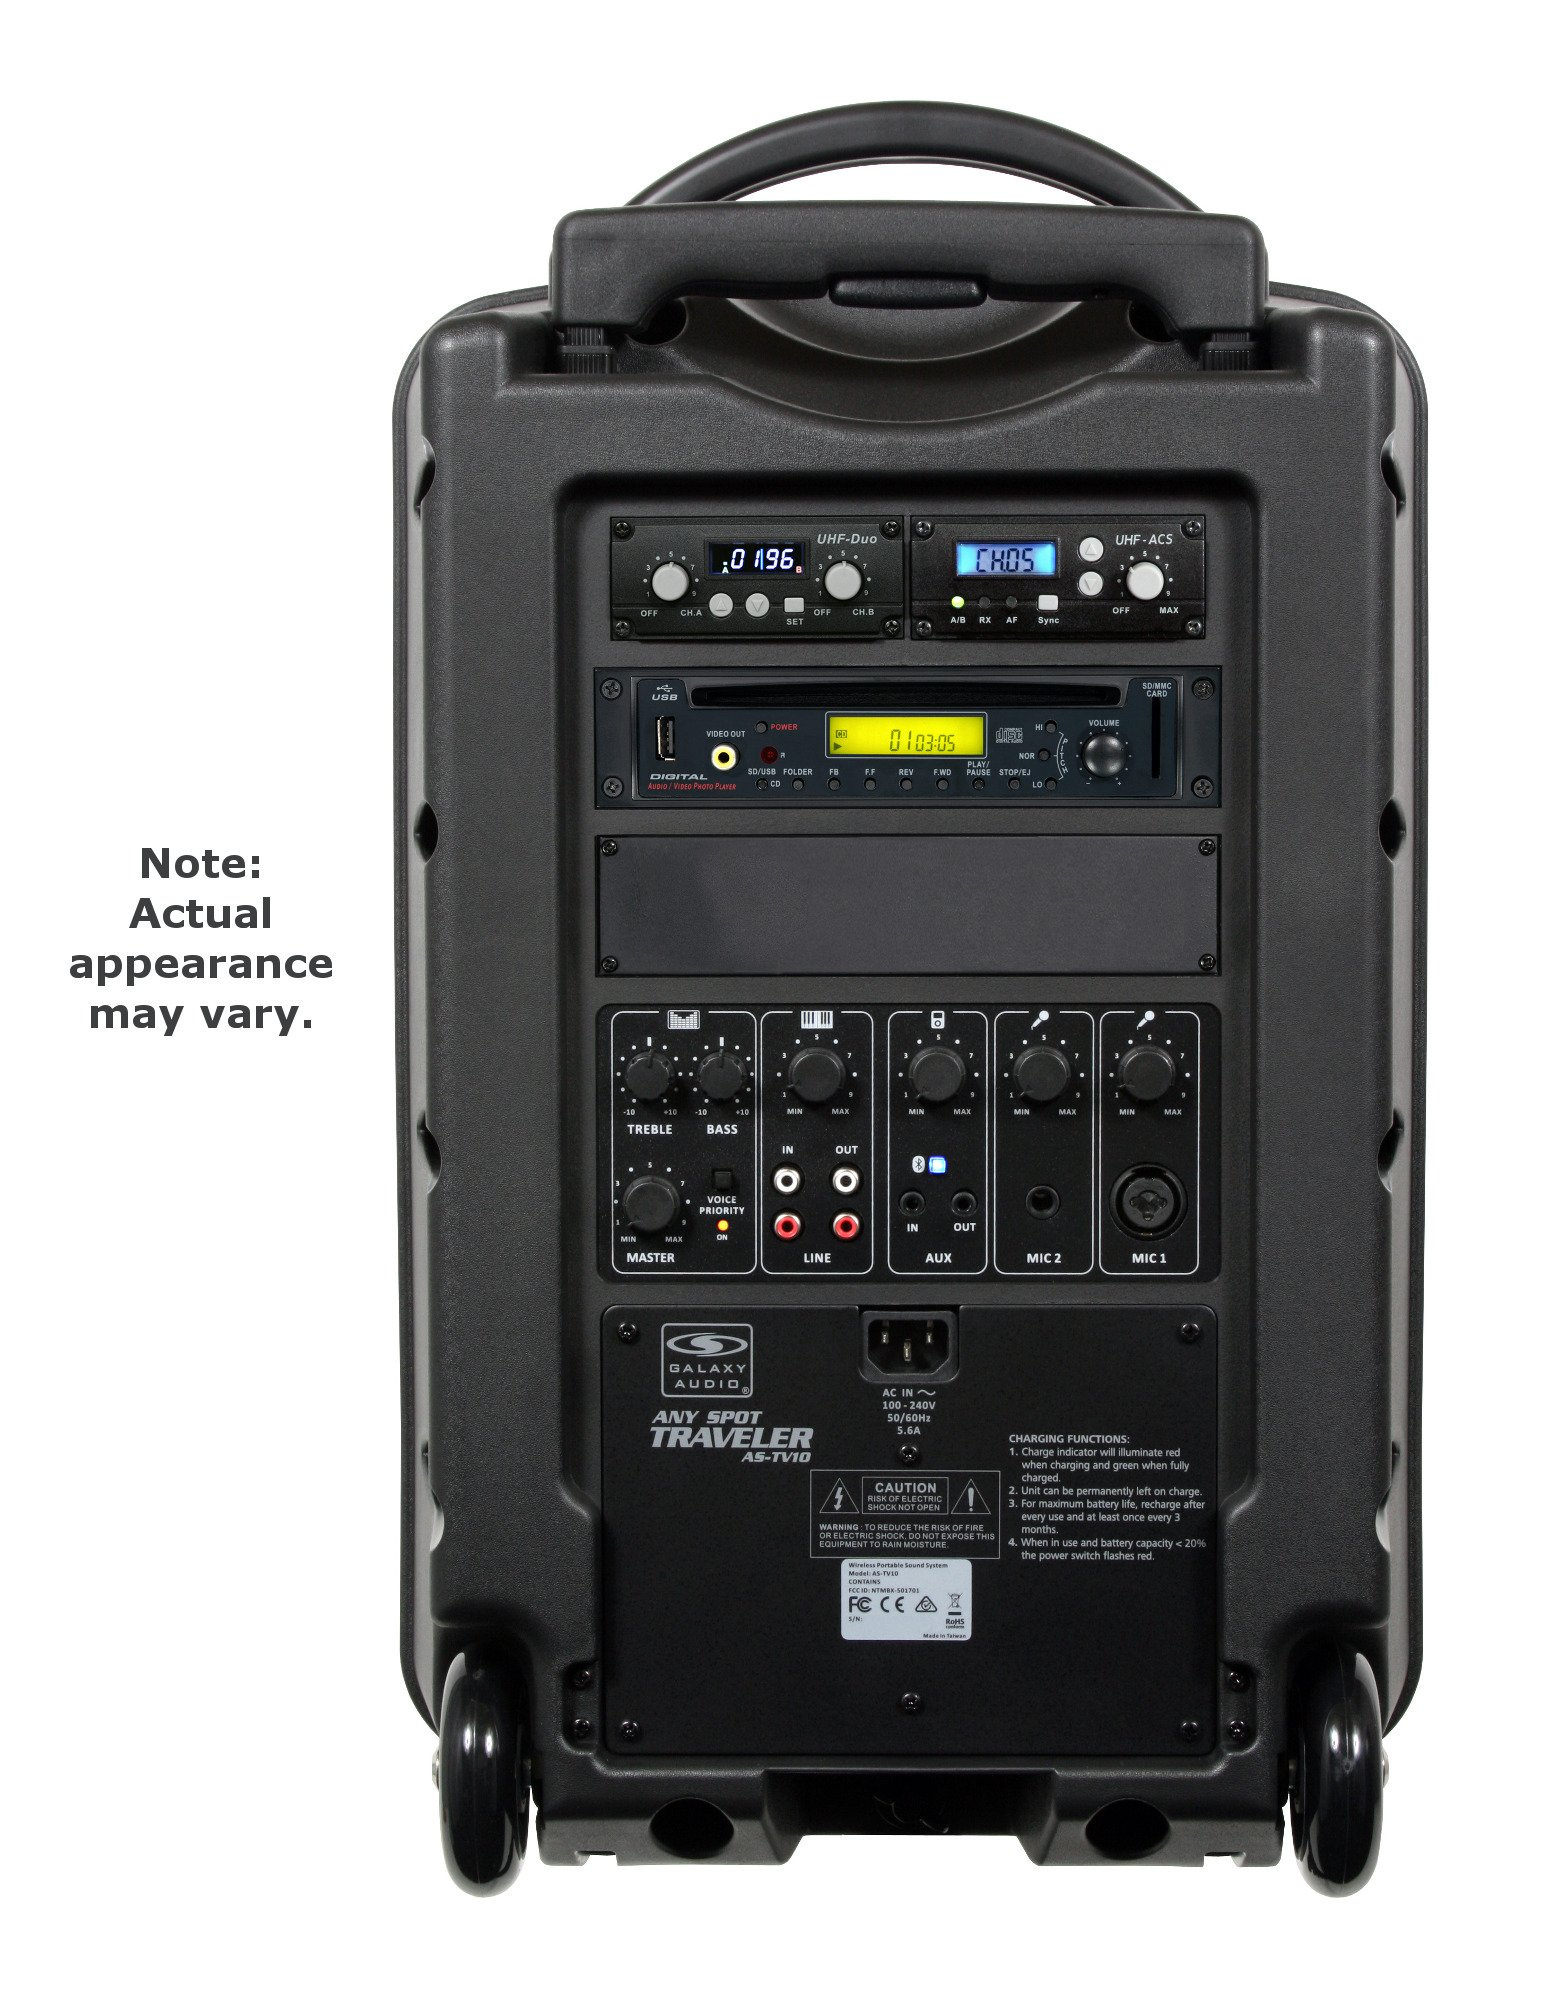 Galaxy Audio TV10 Any Spot Traveler Sound System with 3 Wireless Receivers, 1 Handheld & 2 Lapel Mics TV10-0021HVV0G